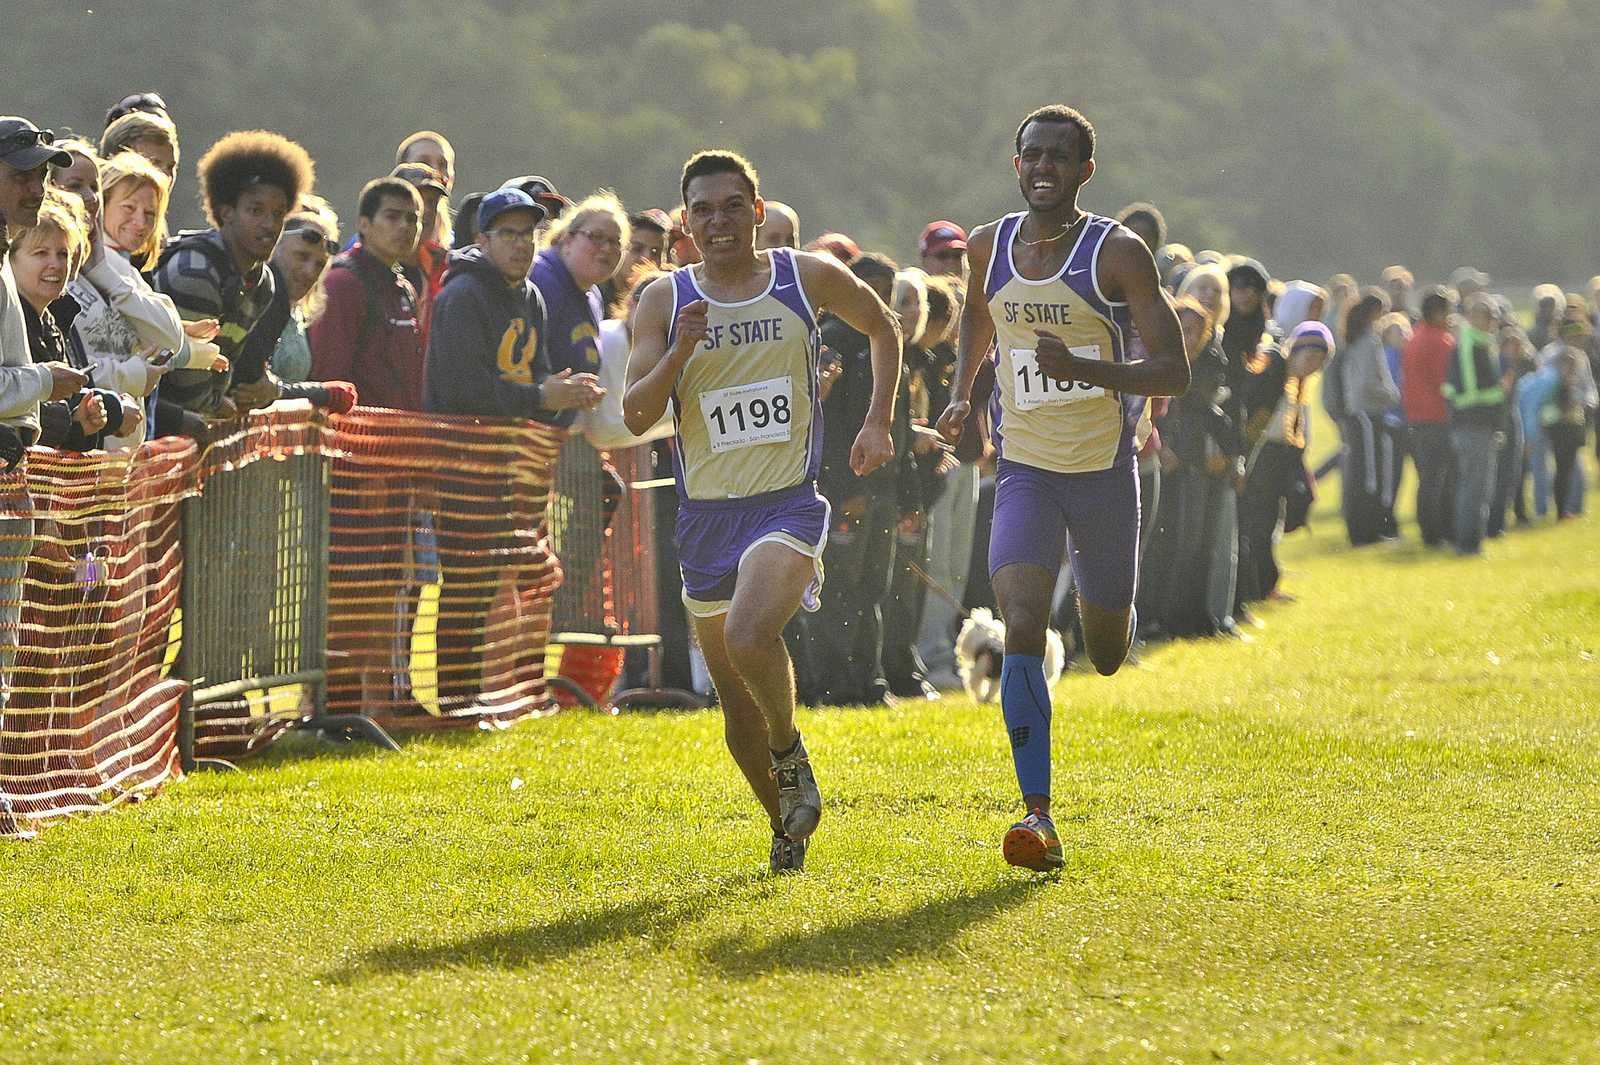 Benji Preciado (1198) and Bruk Assefa (1185) sprint for 6th place at the mens race of the SF State invitational at Speedway Meadows in Golden Gate Park. Preciado crosses the line before Assefa. Friday, Oct. 11, 2013.